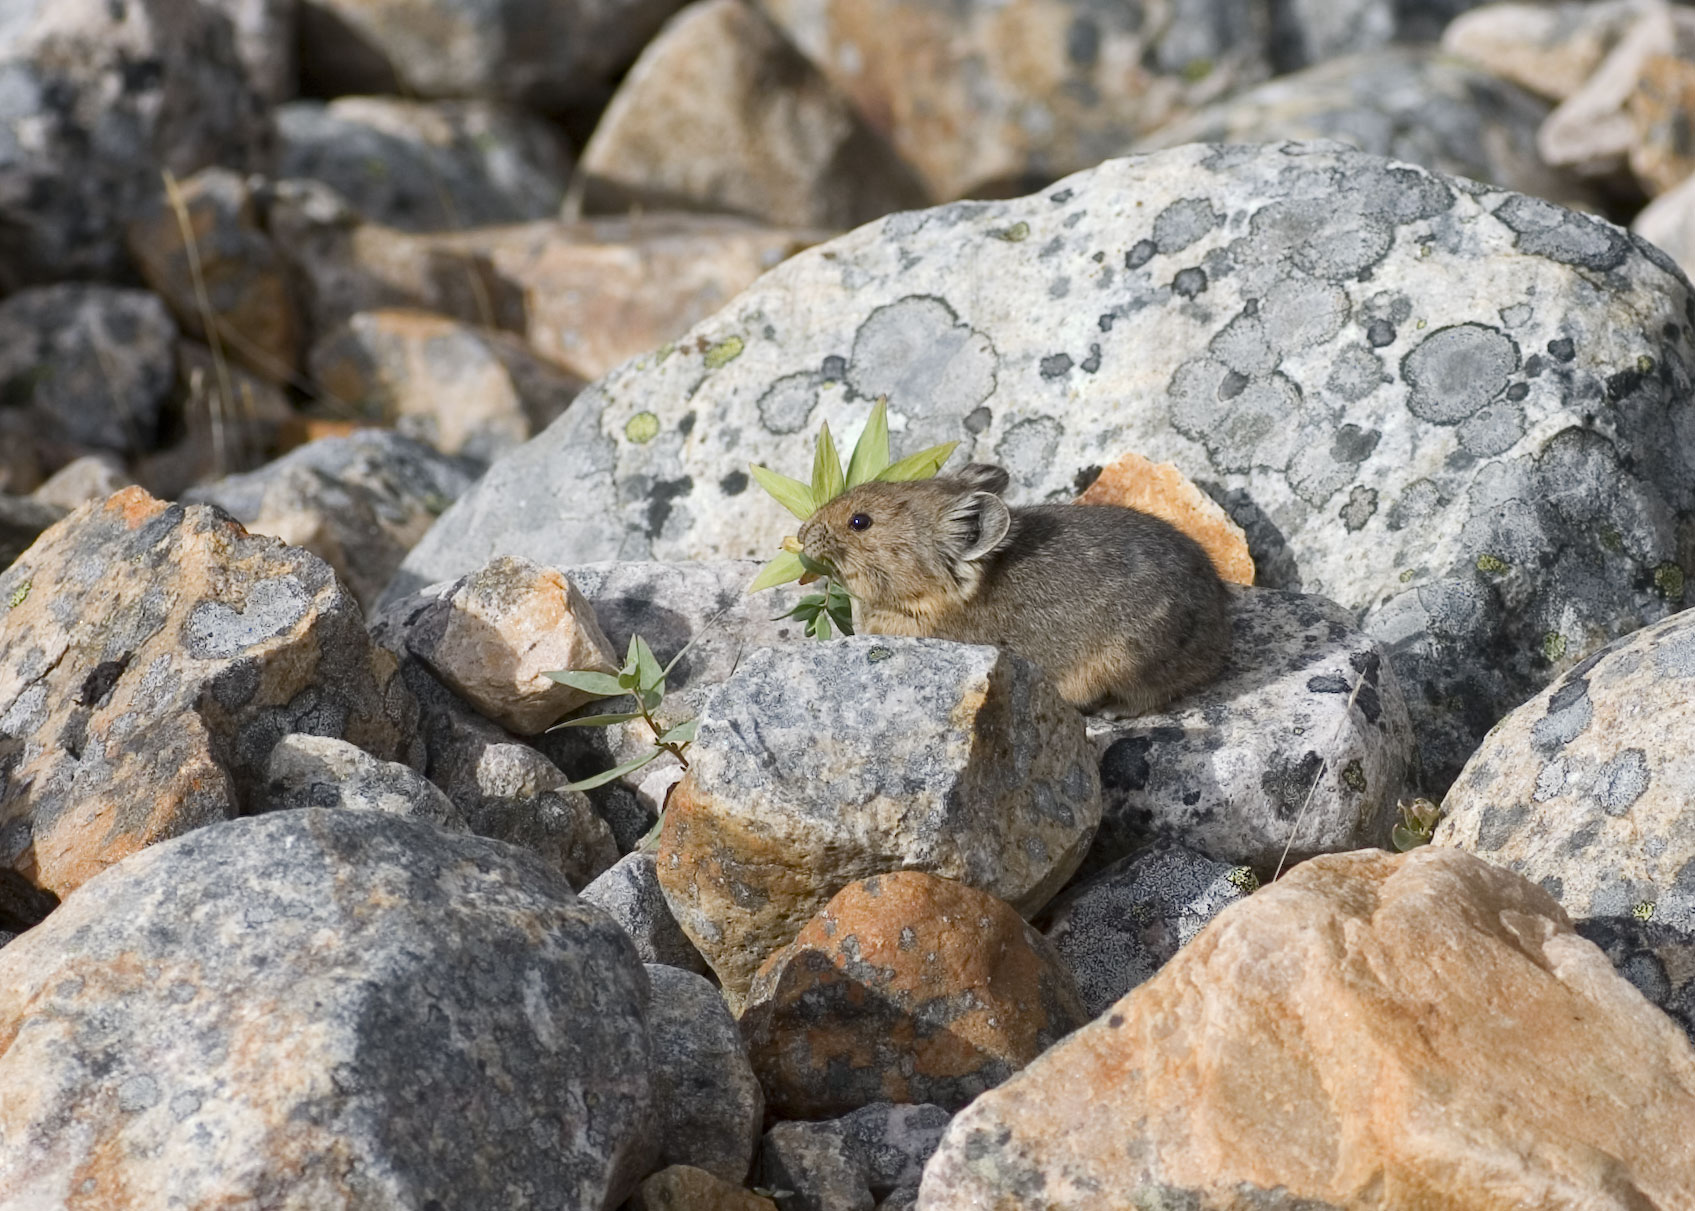 Pikas may face less warming threat